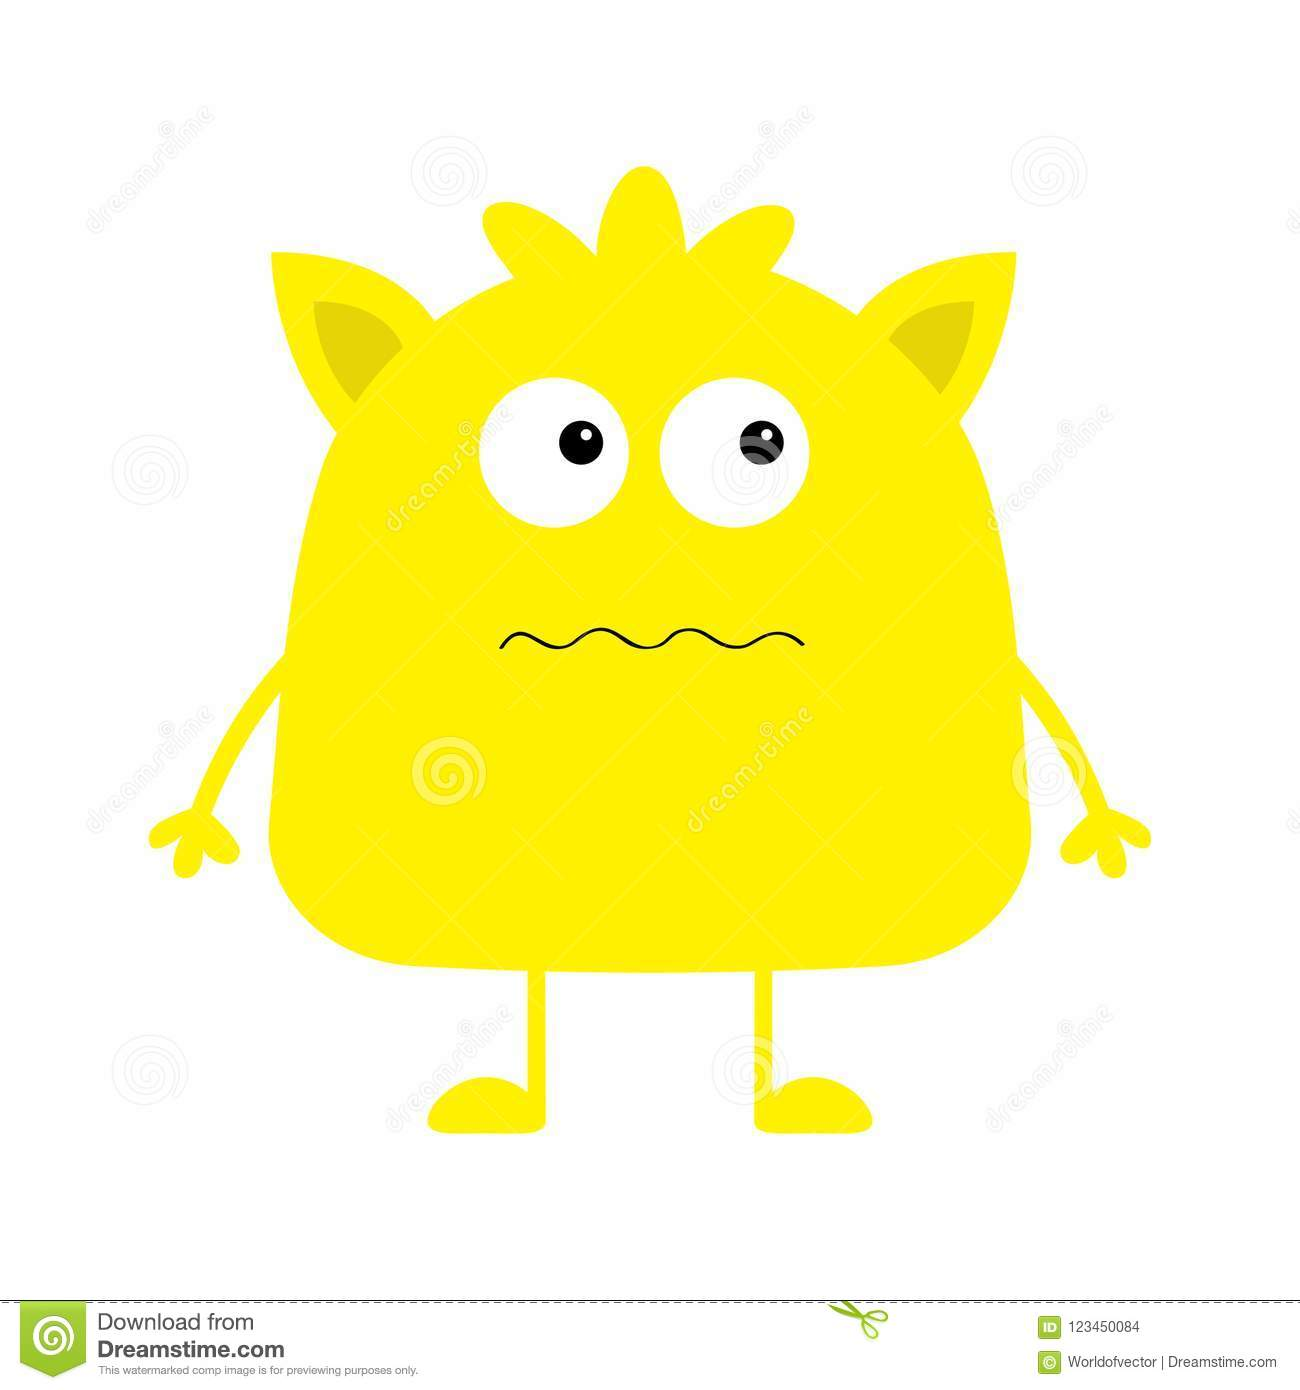 Cute Yellow Monster Icon Happy Halloween Cartoon Colorful Scary Funny Character Eyes Ears Mouth Hair Funny Baby Collection Stock Vector Illustration Of Halloween Looking 123450084